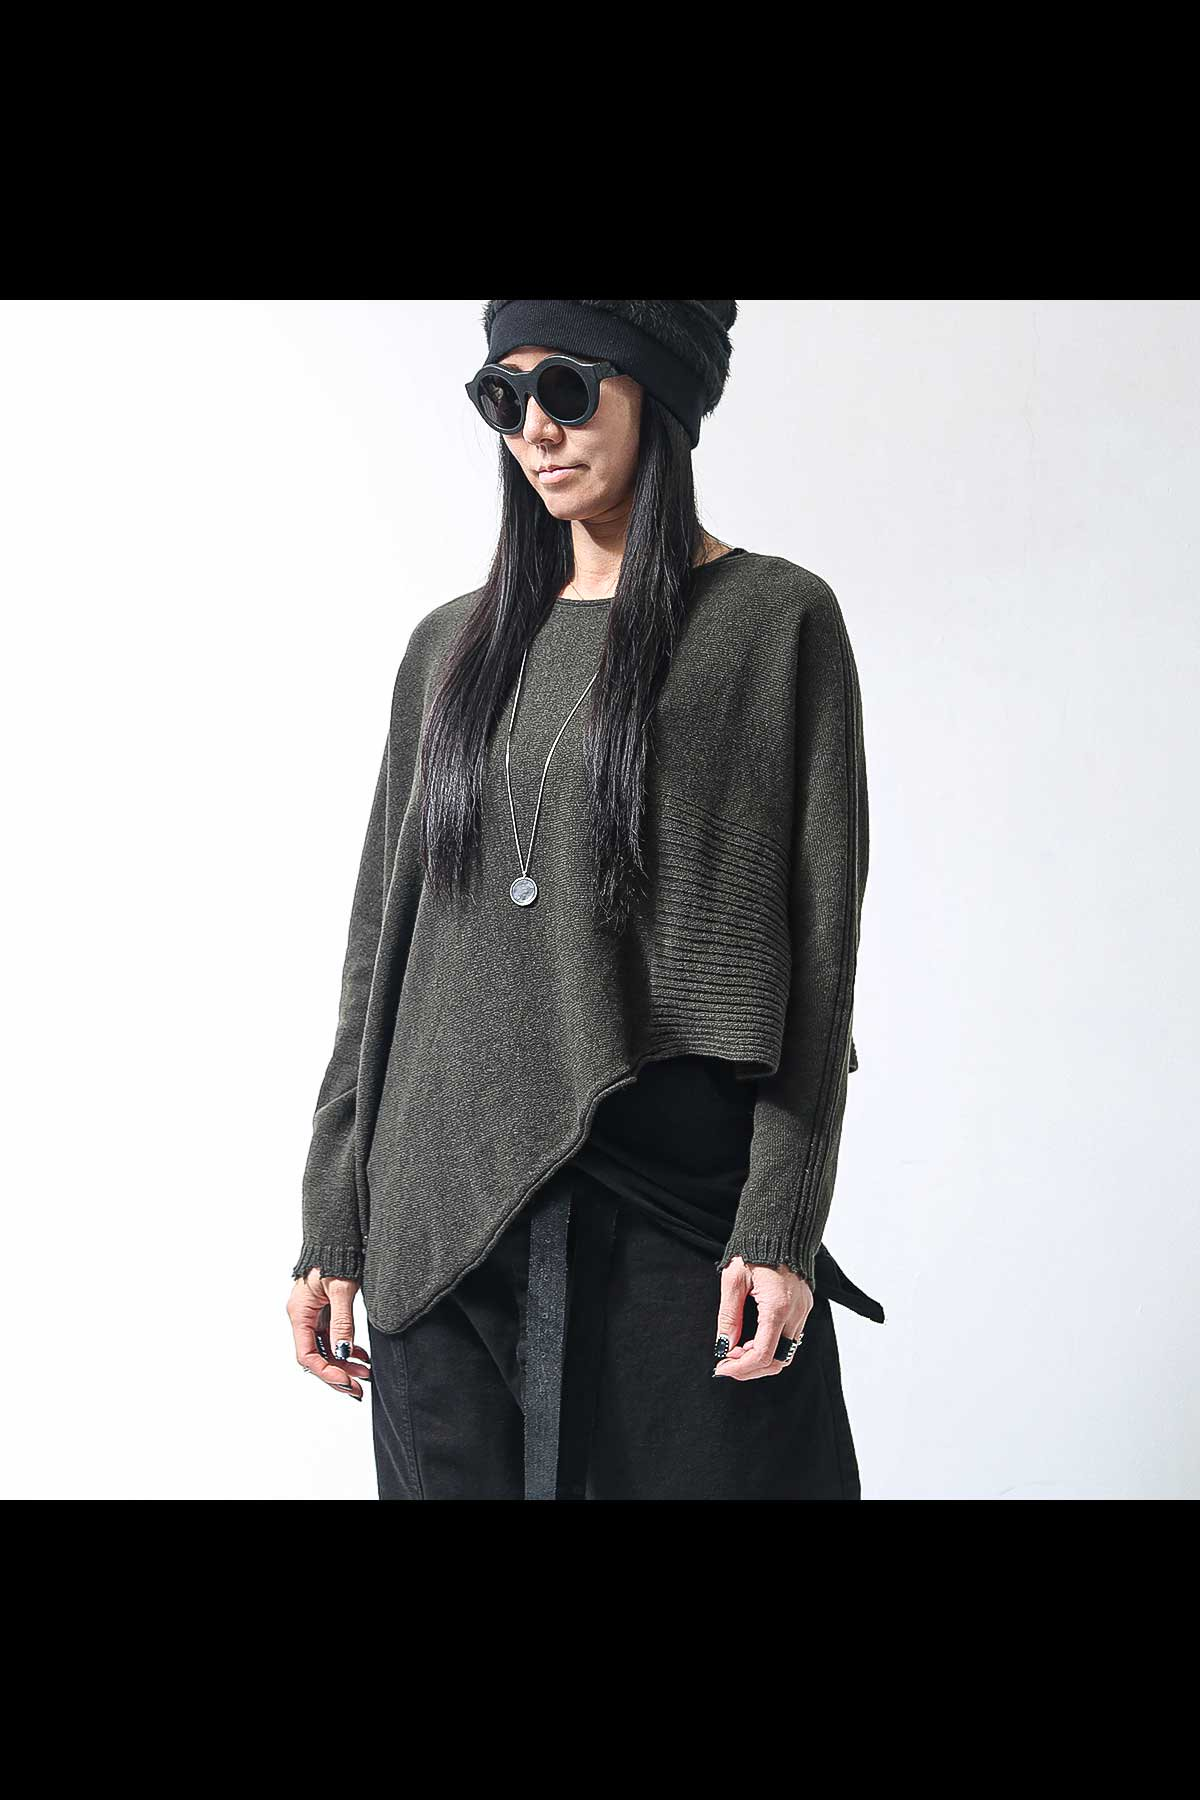 UNISEX ASYMMETRY SHORT KNIT TOPS MD2127_MILITARY